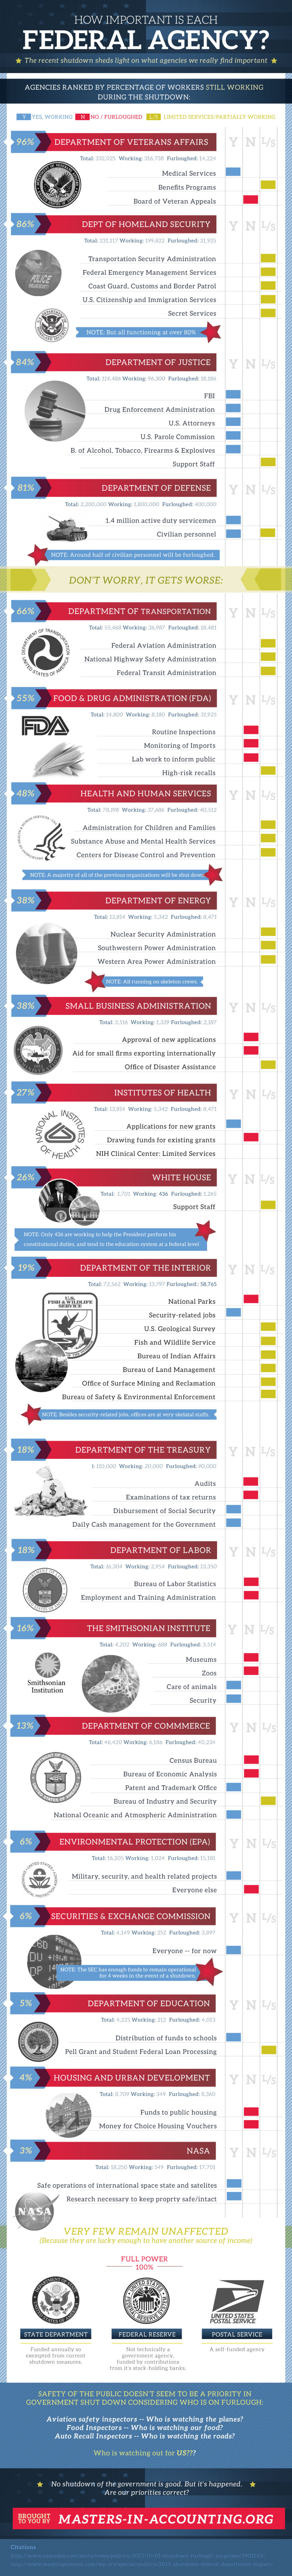 How Important Is Each Federal Agency? Infographic